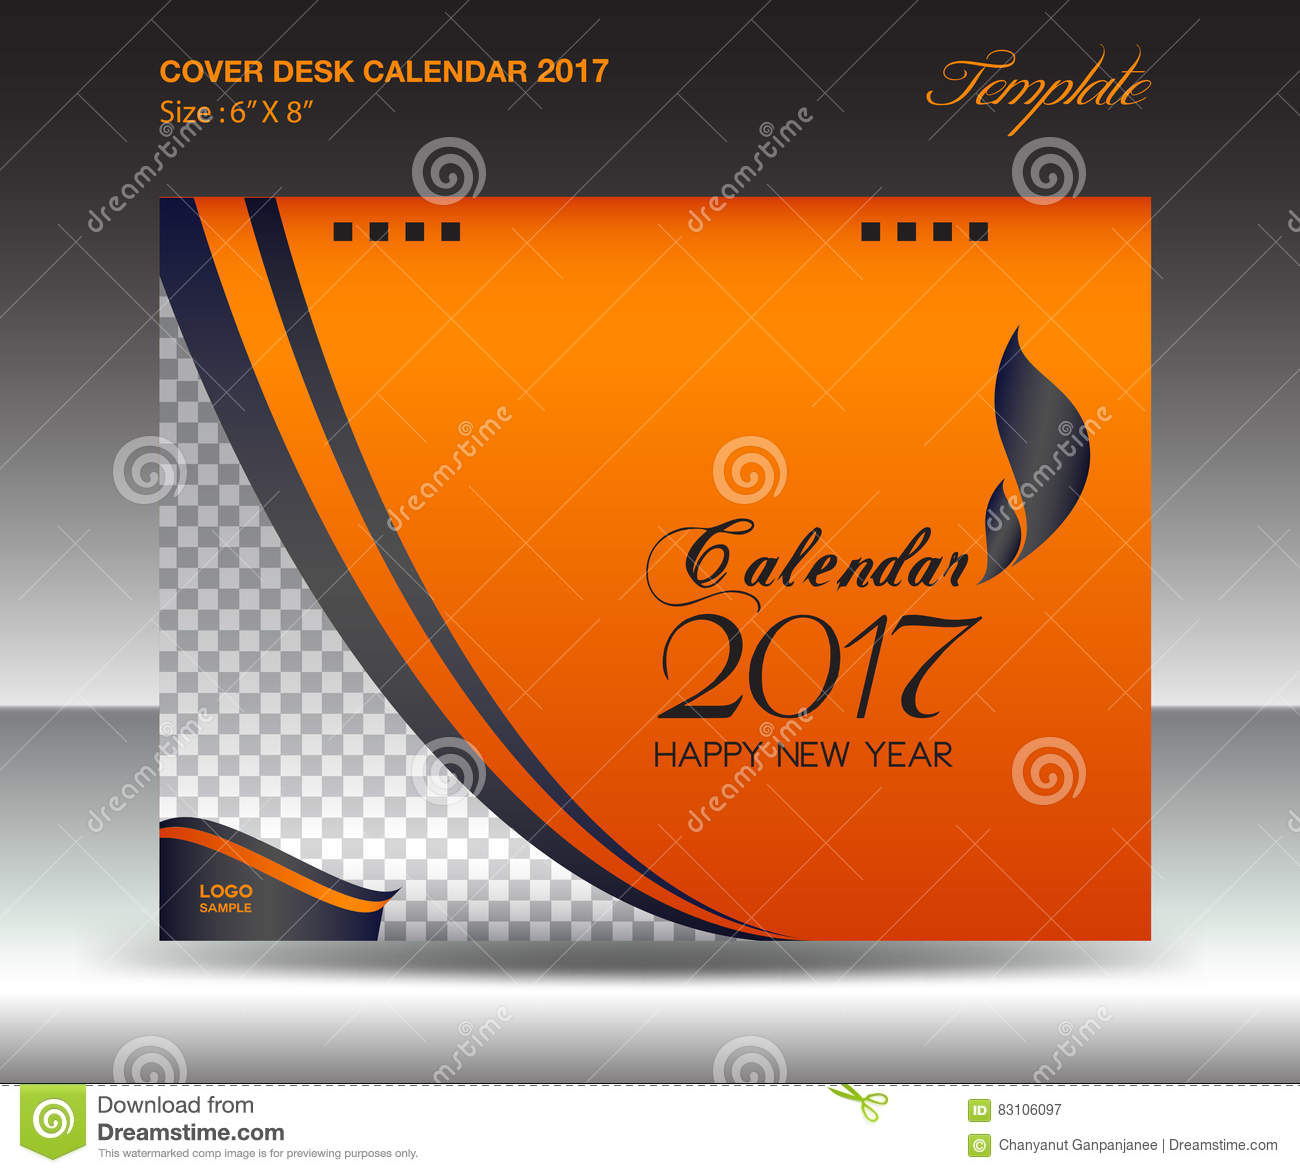 Calendar Cover Design 2014 : Desk calendar year size inch horizontal orange